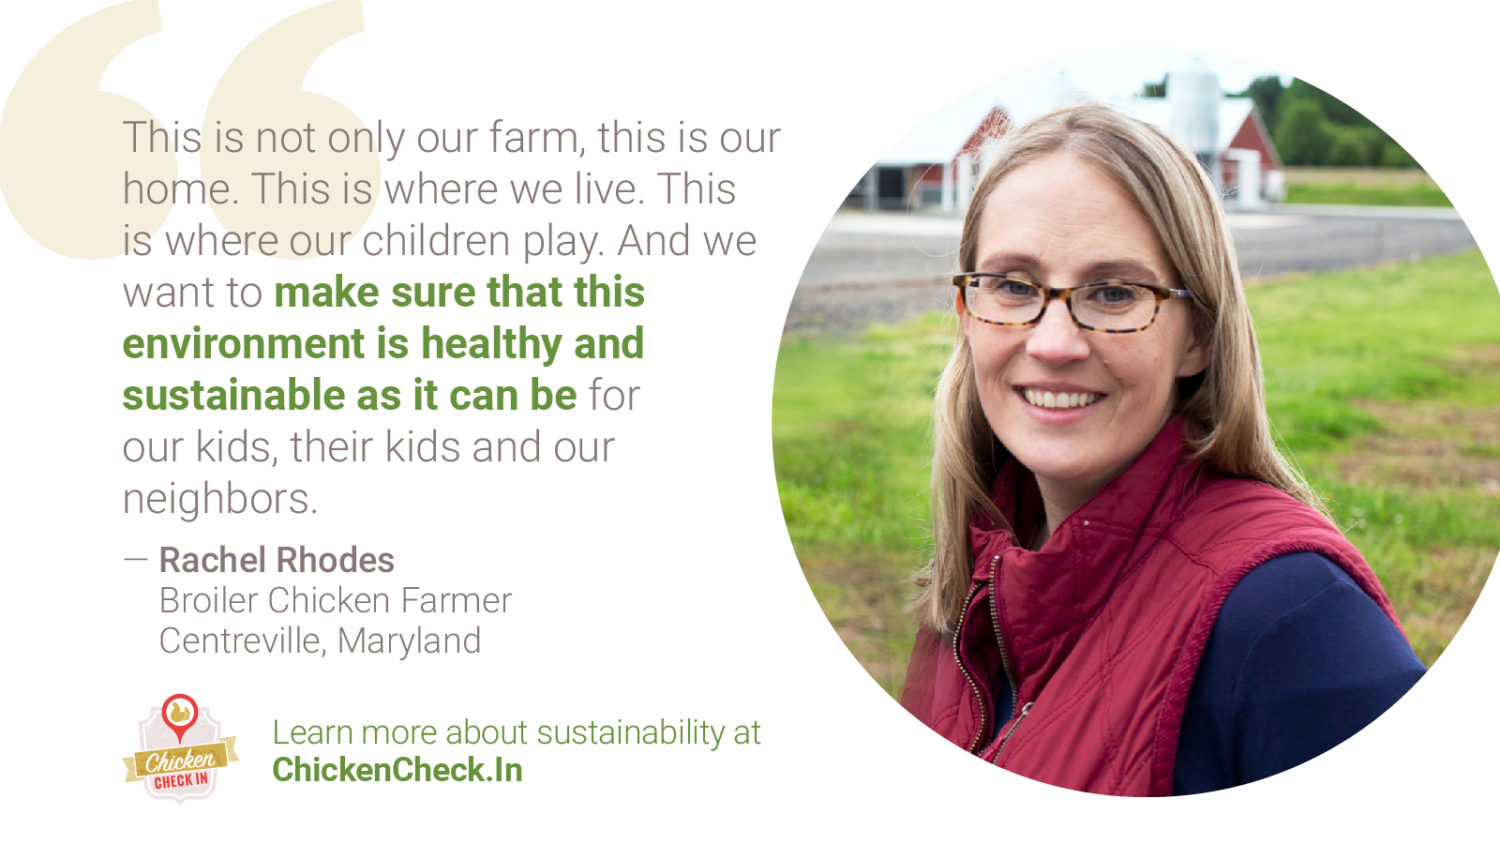 """""""This is not only our farm. This is our home. This is where we live. This is where our children play. And we want to make sure that this environment is healthy and sustainable as it can be for our kids, their kids and our neighbors."""" - Rachel Rhodes, broiler chicken farmer from Maryland"""